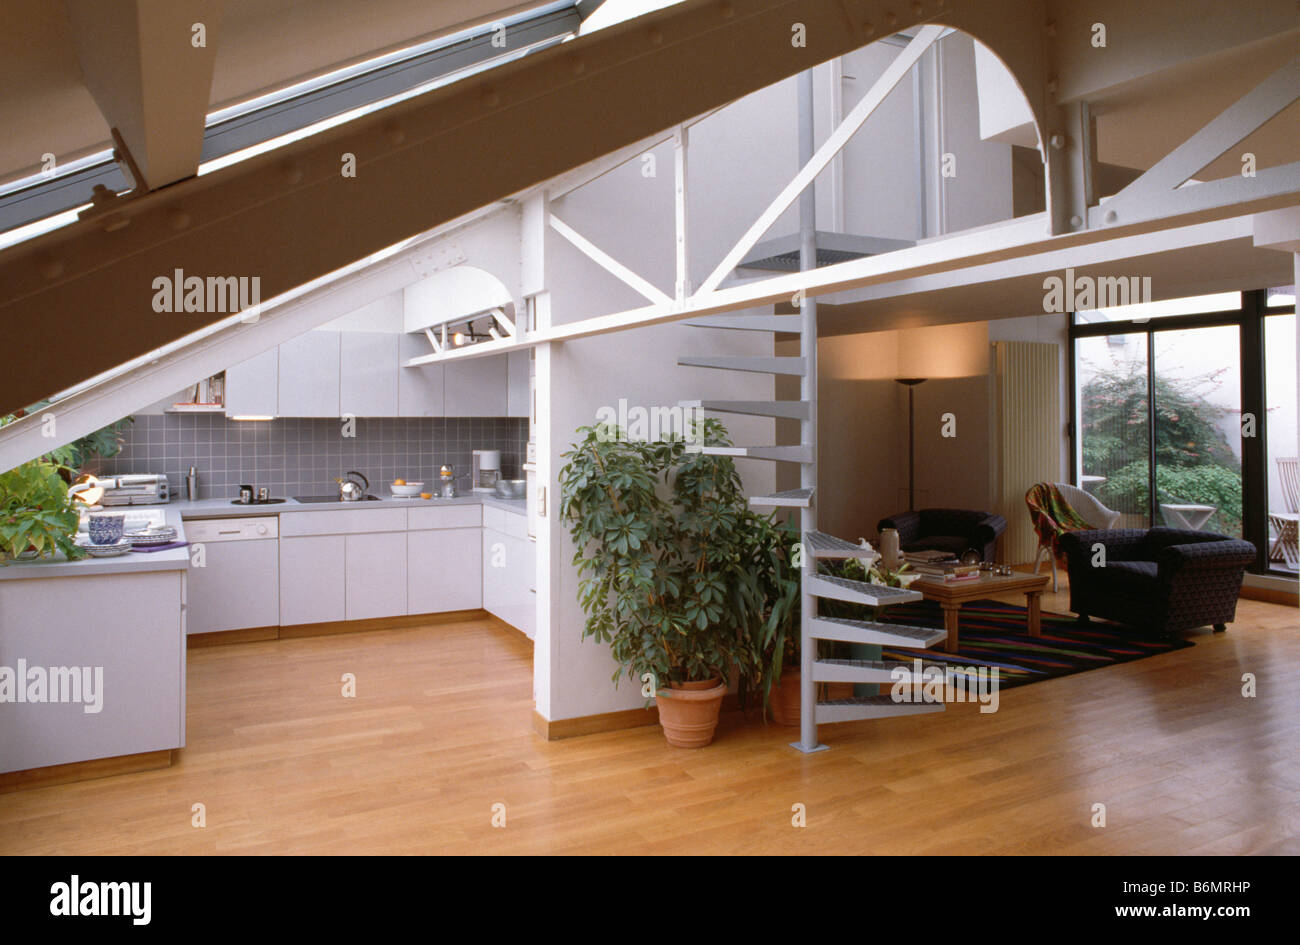 Wooden Flooring And Tall Houseplant Beside Spiral Staircase In